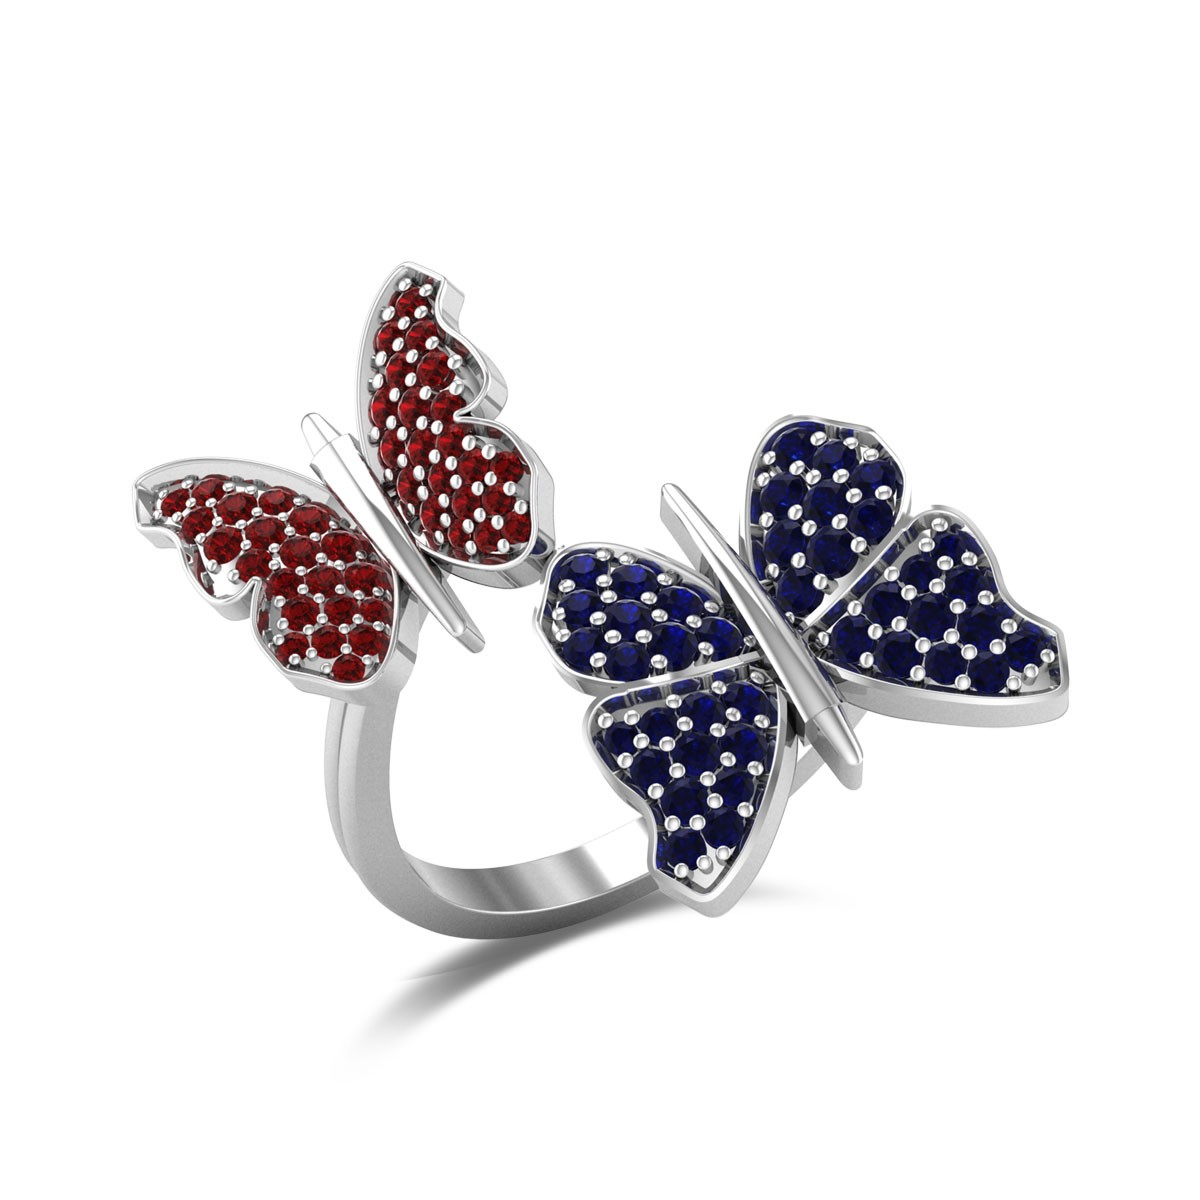 Twin Butterfly Ring